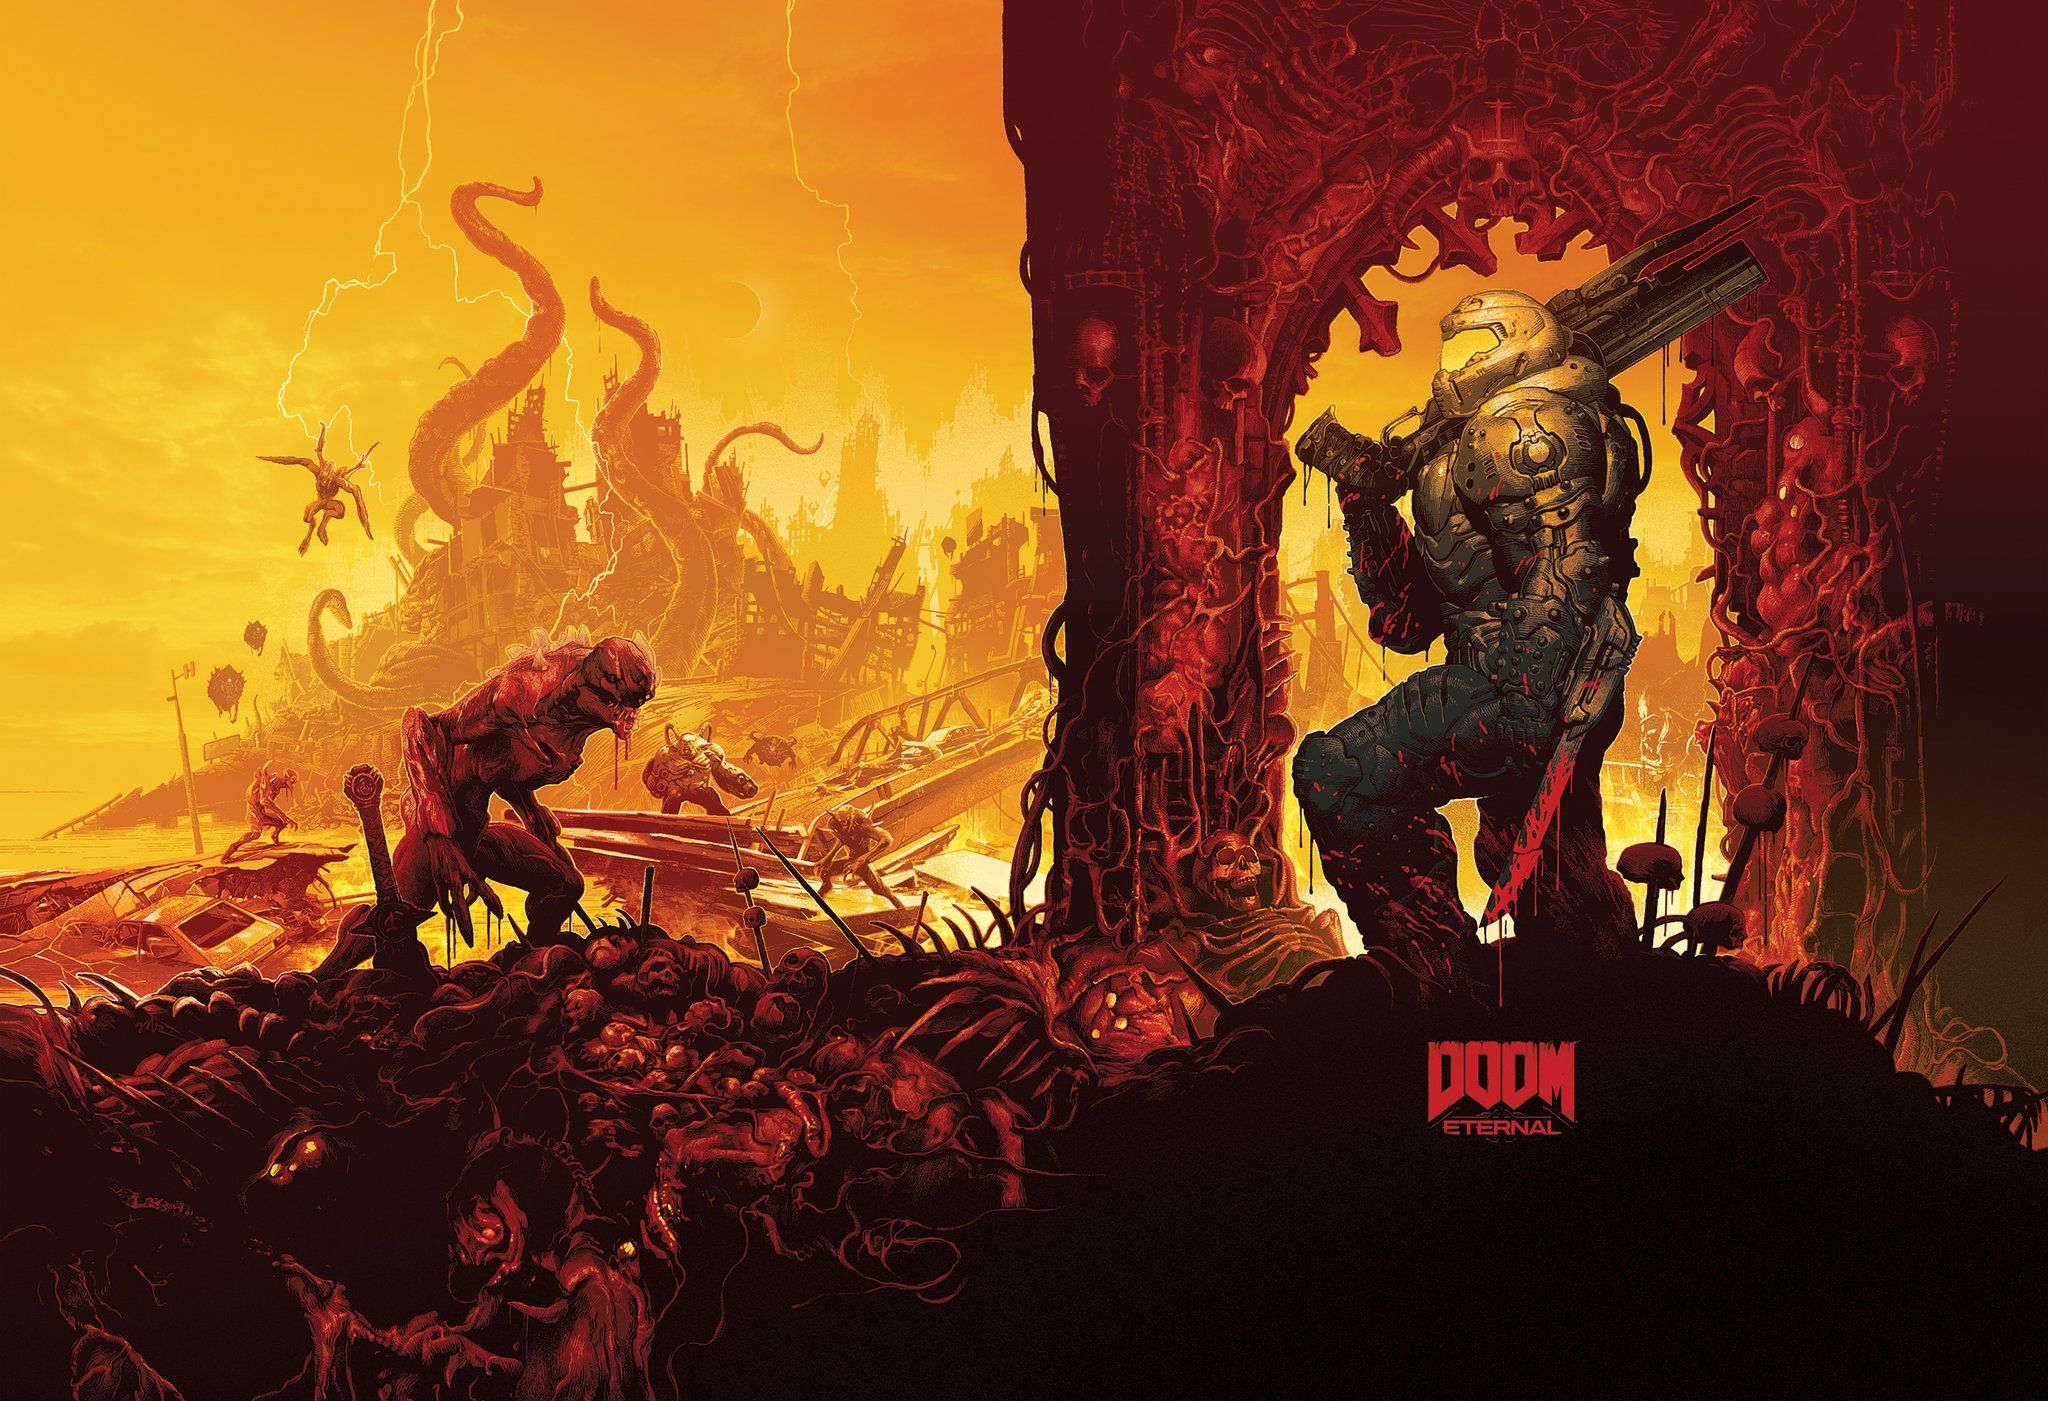 Doom Eternal Art Doom Videogame Doom Game Art